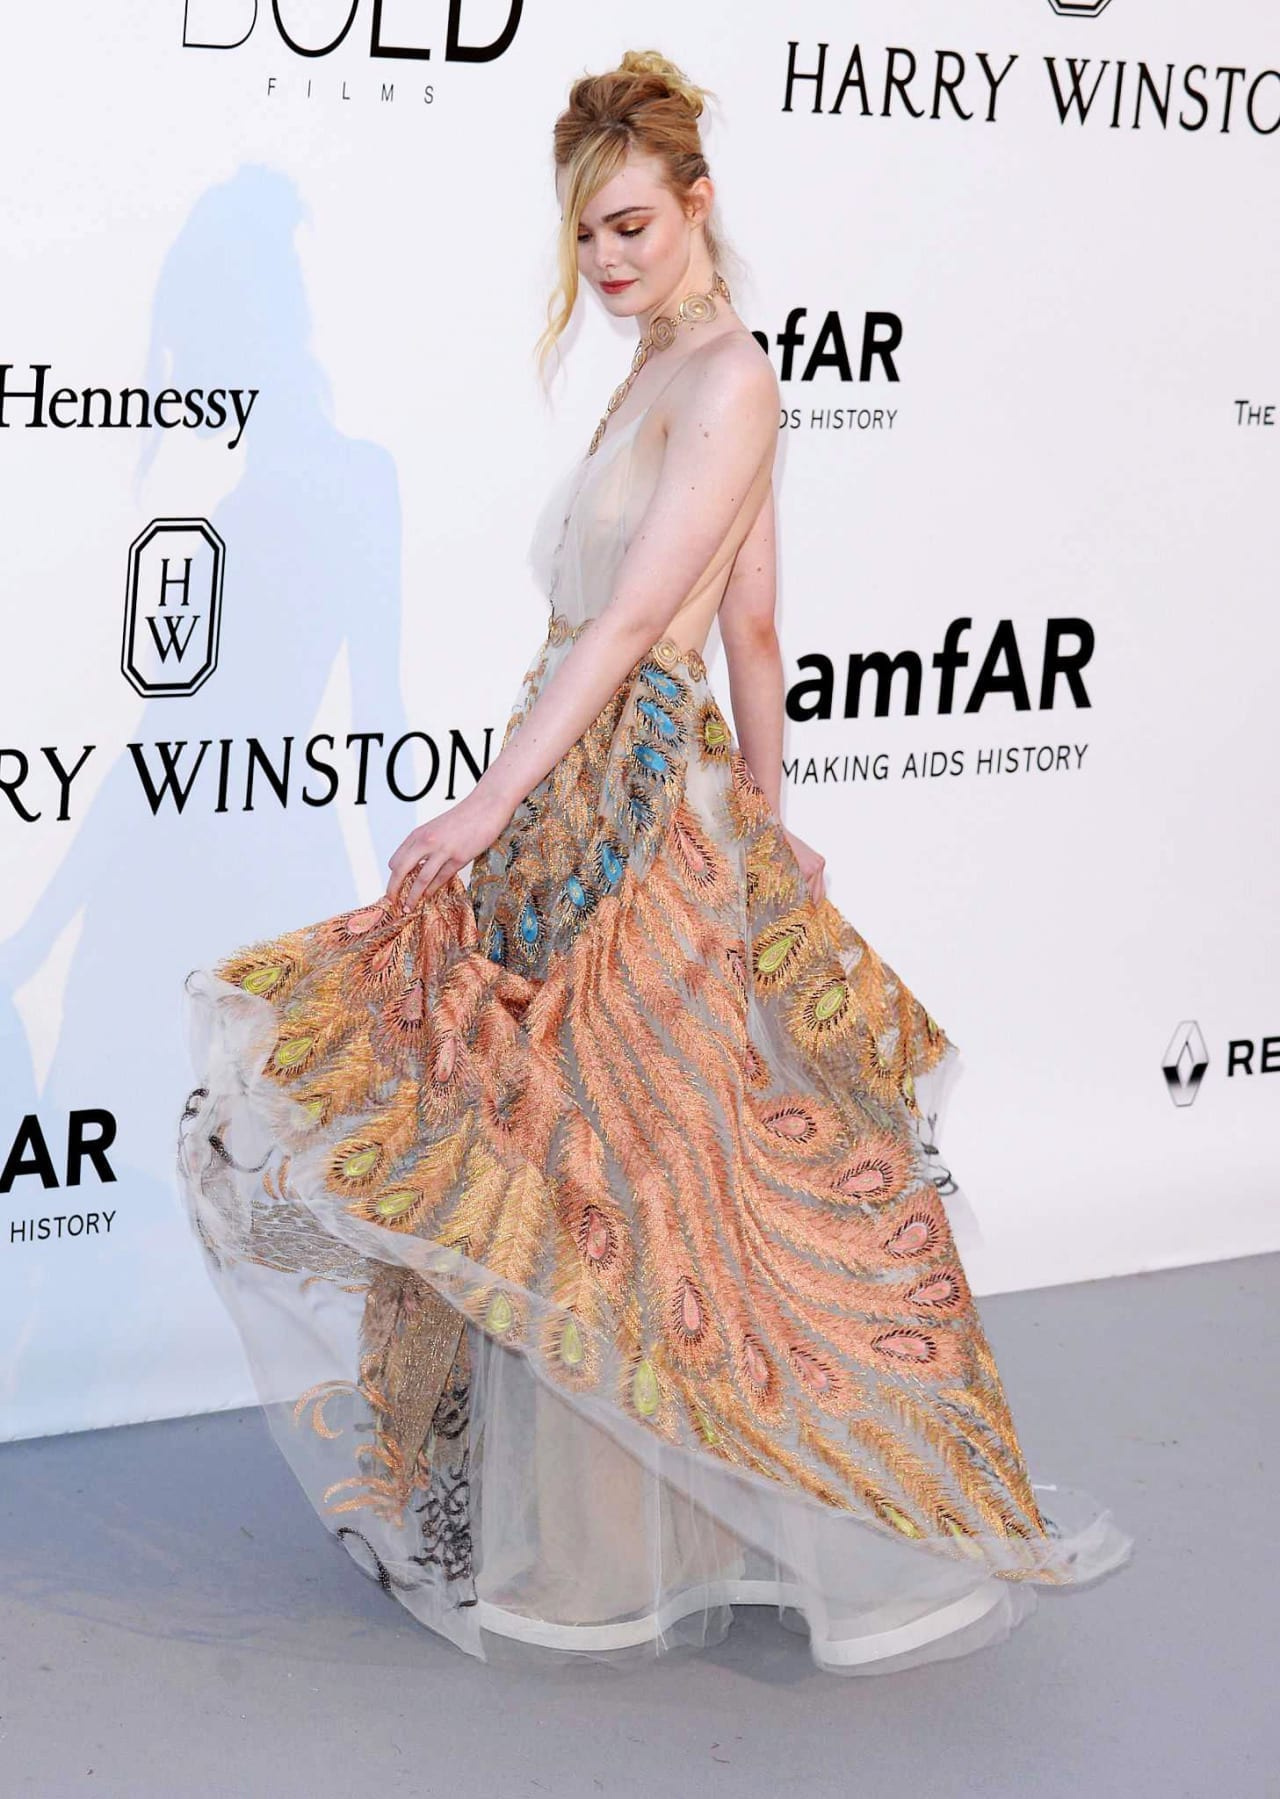 CAP D'ANTIBES, FRANCE - MAY 19: Elle Fanning attends the amfAR's 23rd Cinema Against AIDS Gala at Hotel du Cap-Eden-Roc on May 19, 2016 in Cap d'Antibes, France. (Photo by Anthony Harvey/FilmMagic), elle fanning cannes 2016, cheryl fernandez cannes 2016, best dressed cannes 2016, ciao povery, festival di cannes 2016, festival di cannes 2016 look più brutti, abiti festival di cannes 2016, theladycracy.it, elisa bellino, fashion blog 2016, fashion blogger italiane, fashion blogger famose, fashion blogger italia,